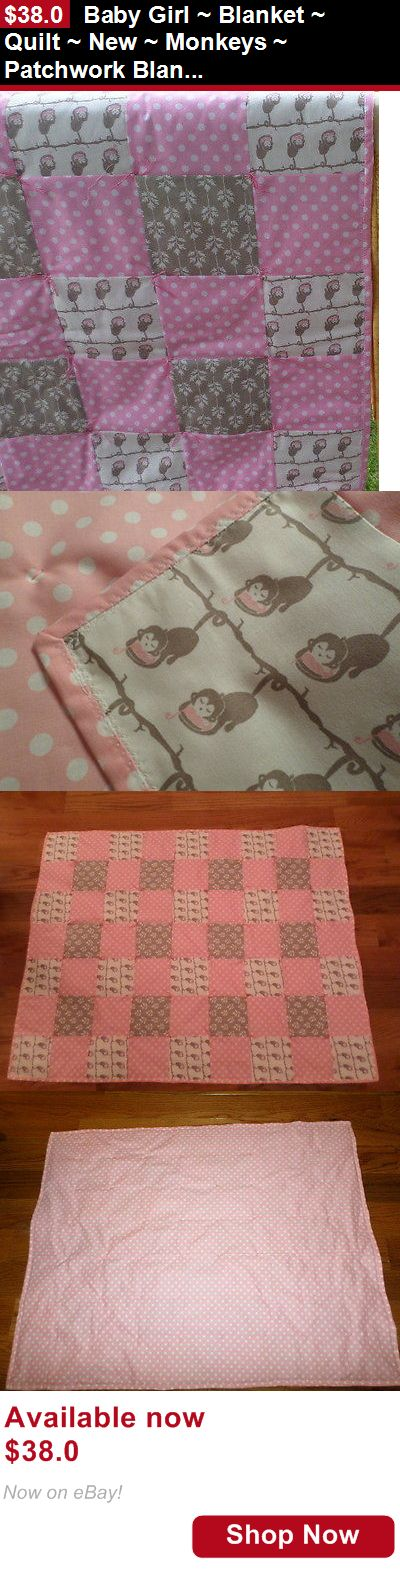 Quilts And Coverlets: Baby Girl ~ Blanket ~ Quilt ~ New ~ Monkeys ~ Patchwork Blanket BUY IT NOW ONLY: $38.0